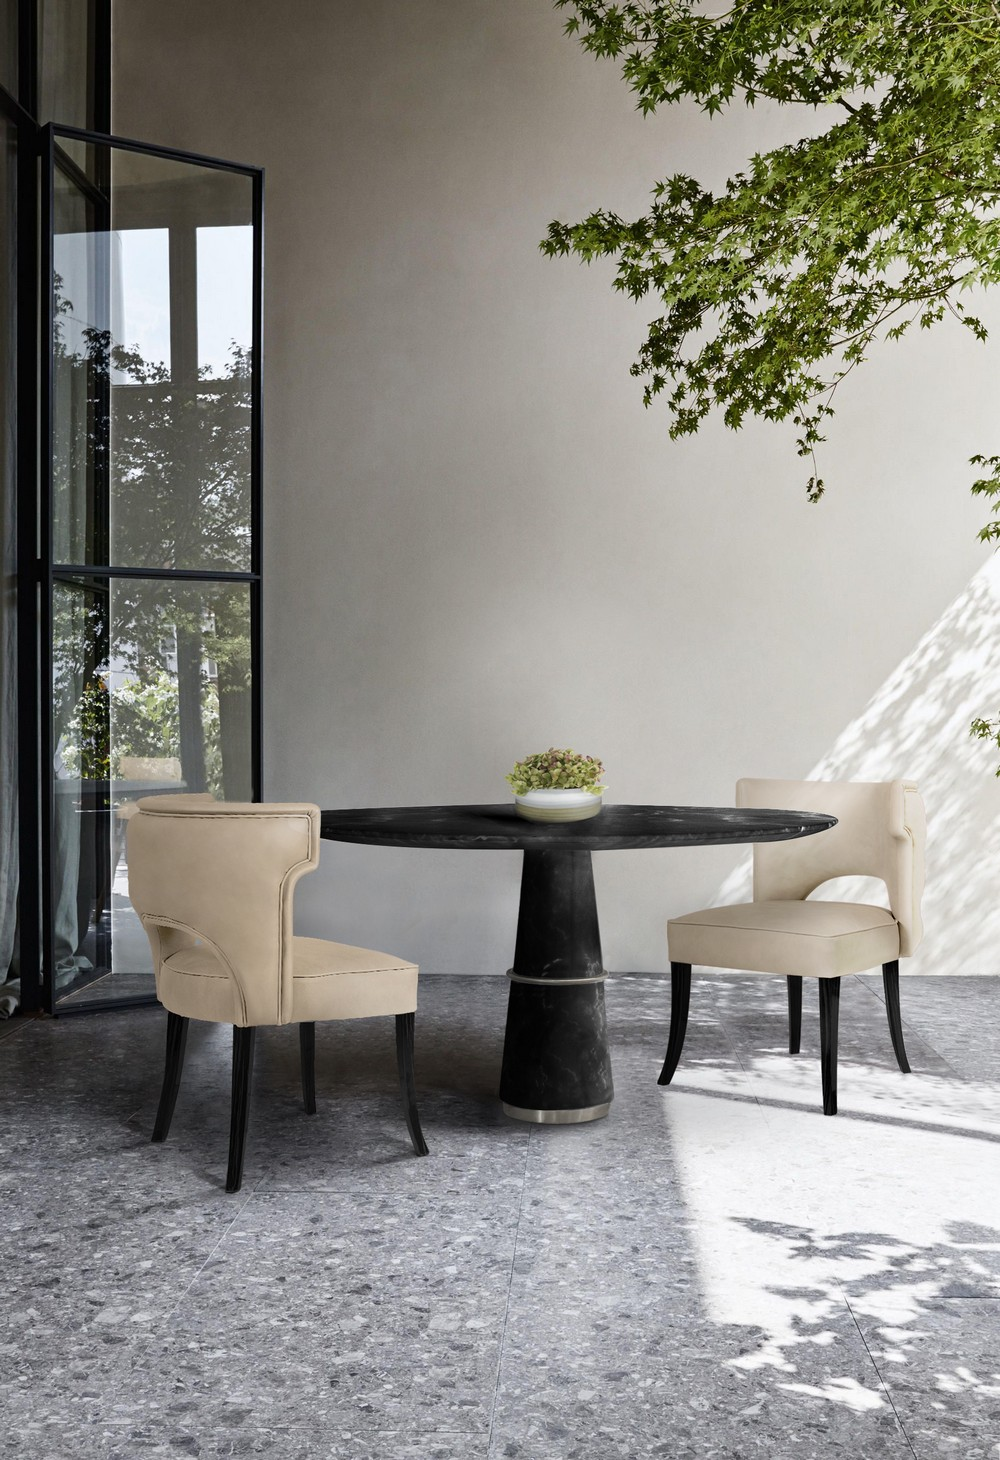 Interior Design Trends To Refine Your Dining Room in 2020 interior design trends Interior Design Trends To Refine Your Dining Room in 2020 neutrals